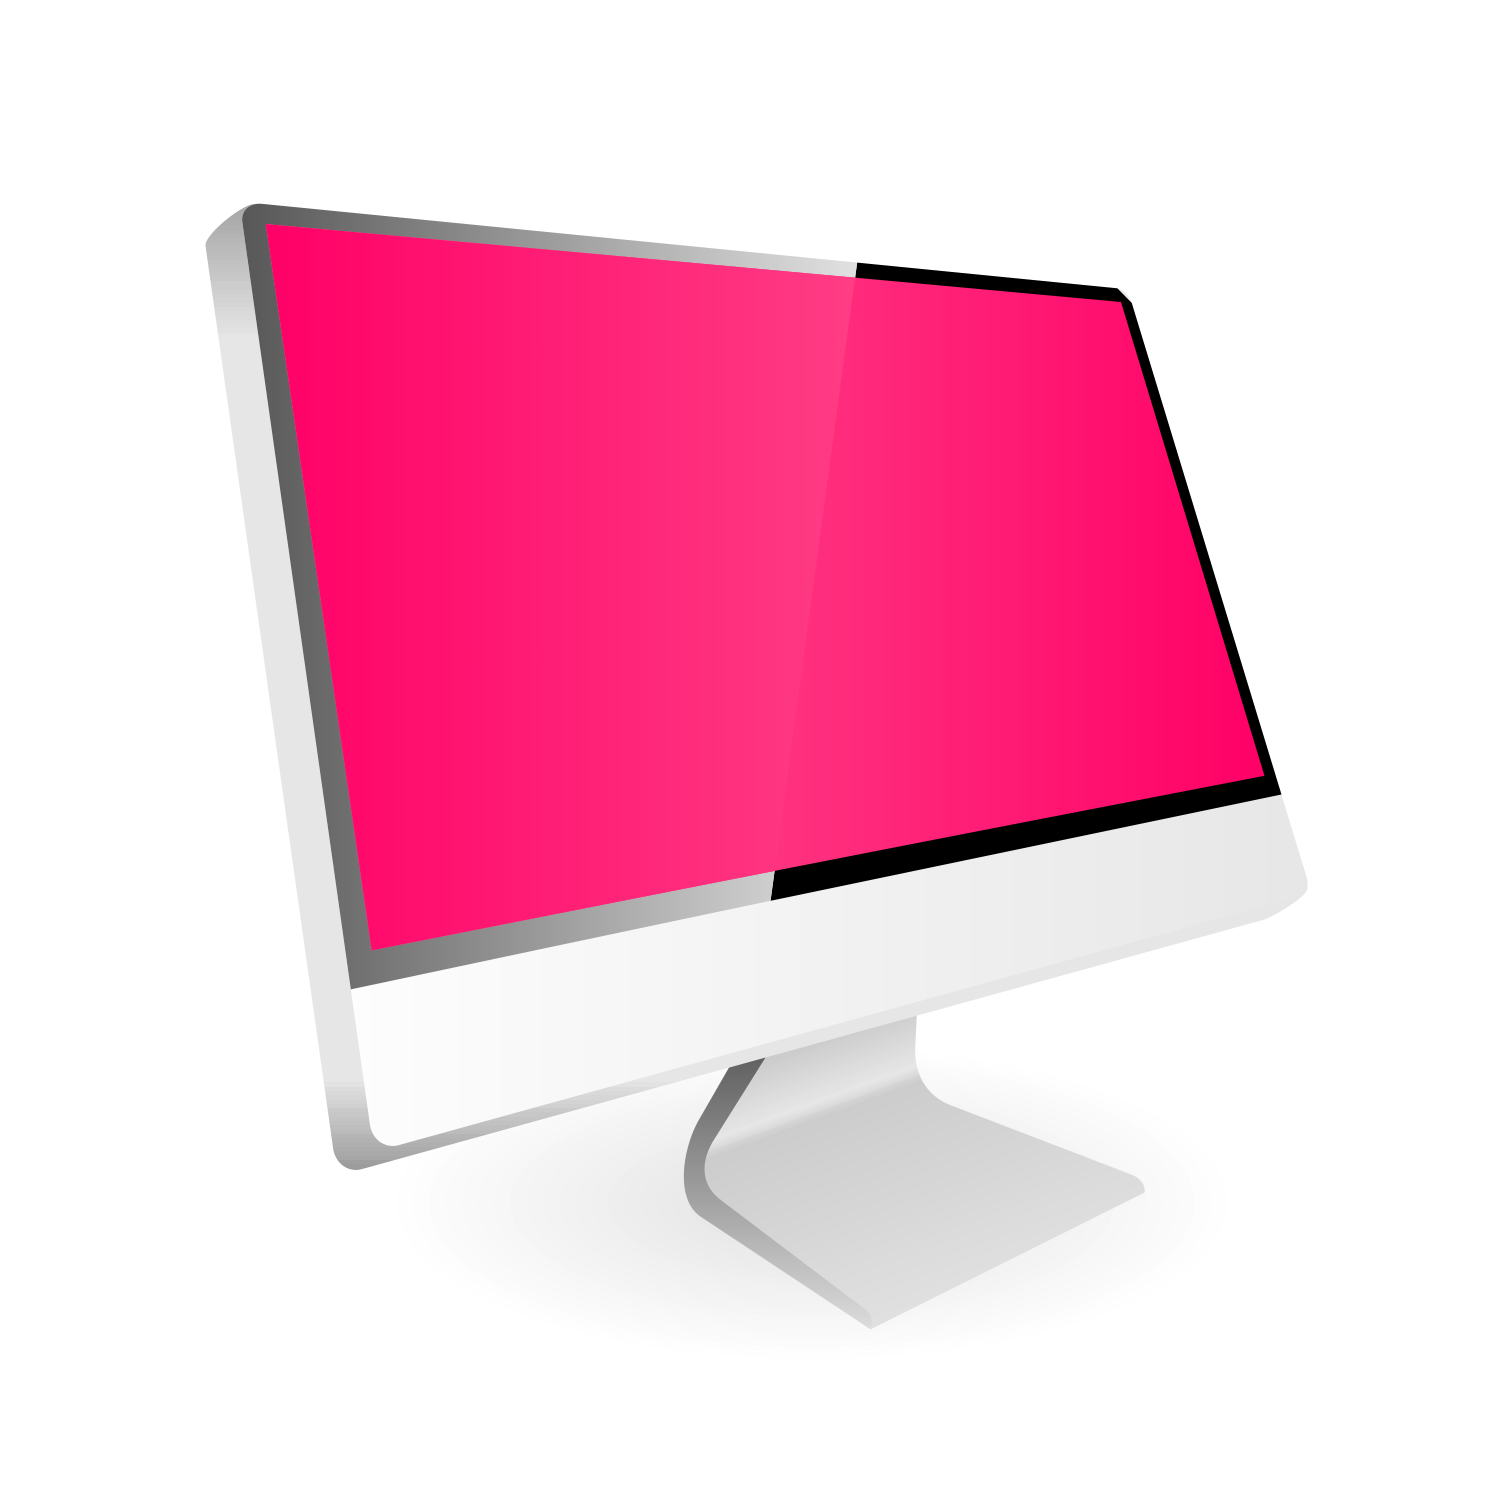 Display vector